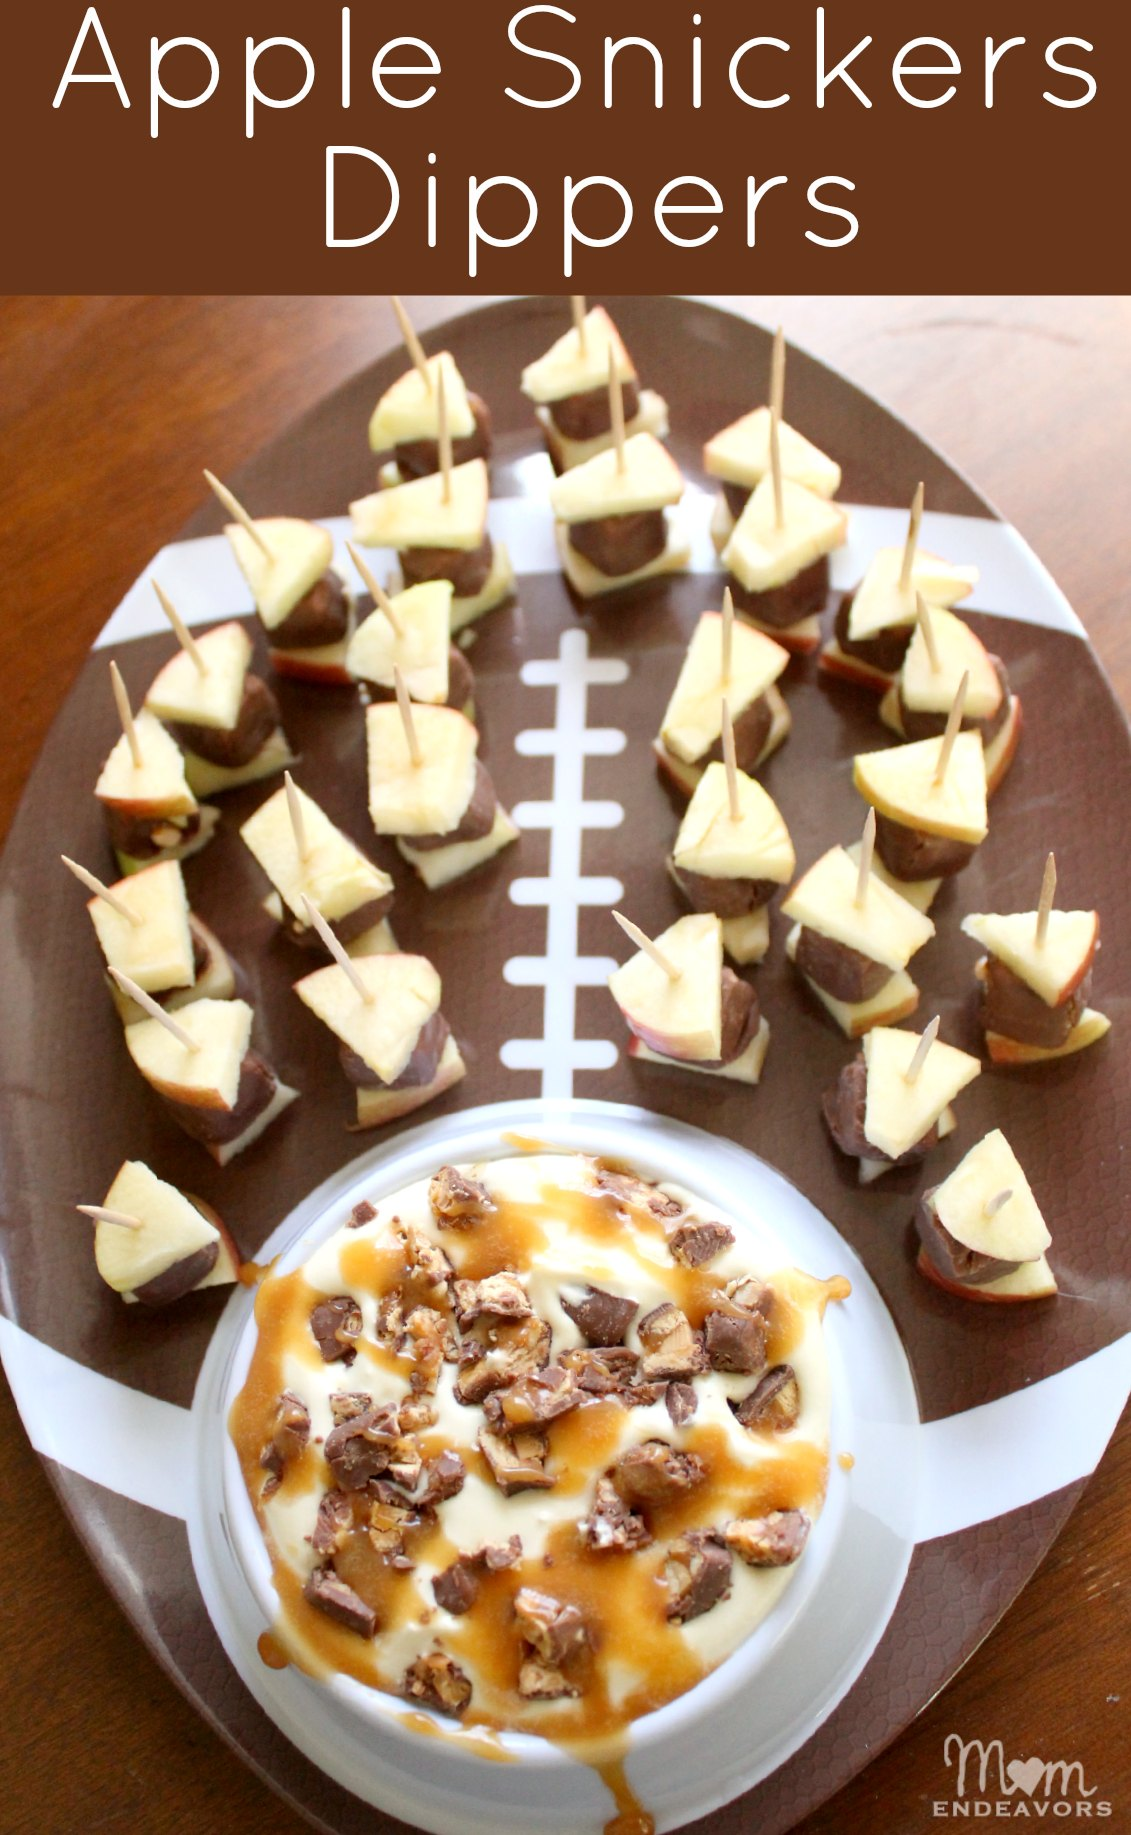 Apple Snickers Dippers #GameDayBites